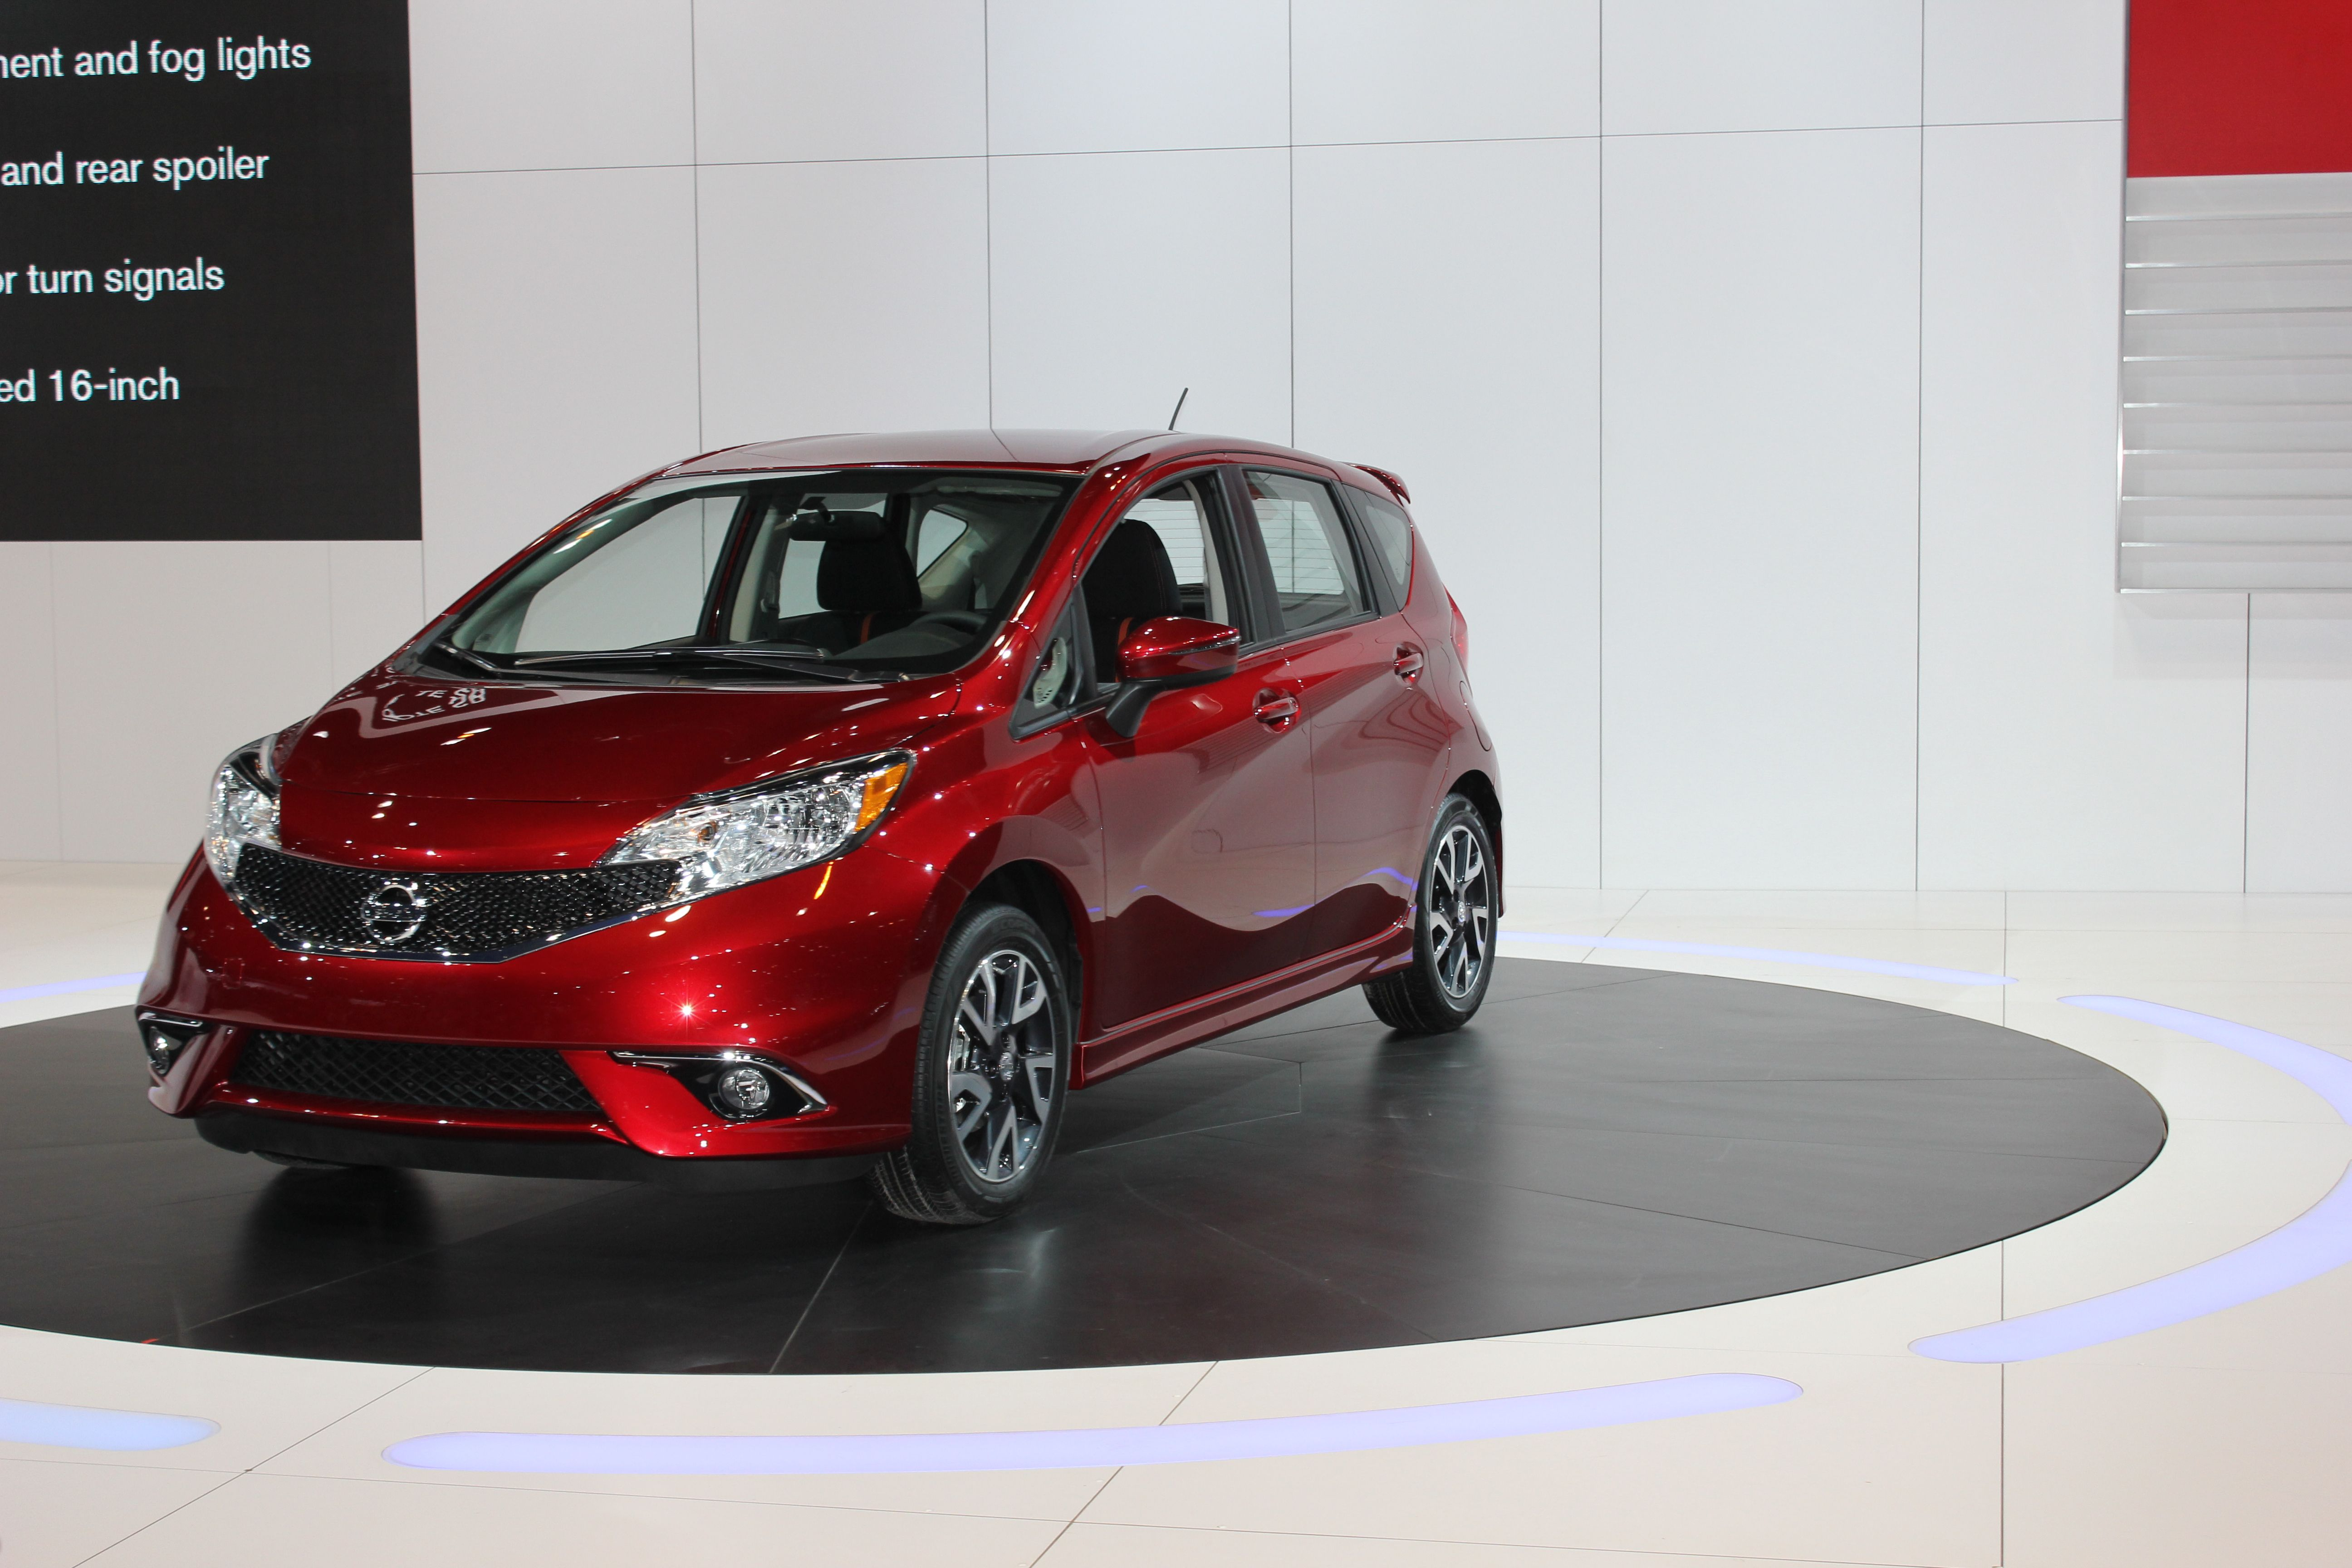 Now Sportier Than Ever The 2015 Versa Note Sr Made Its Debut At The 2014 Chicago Auto Show